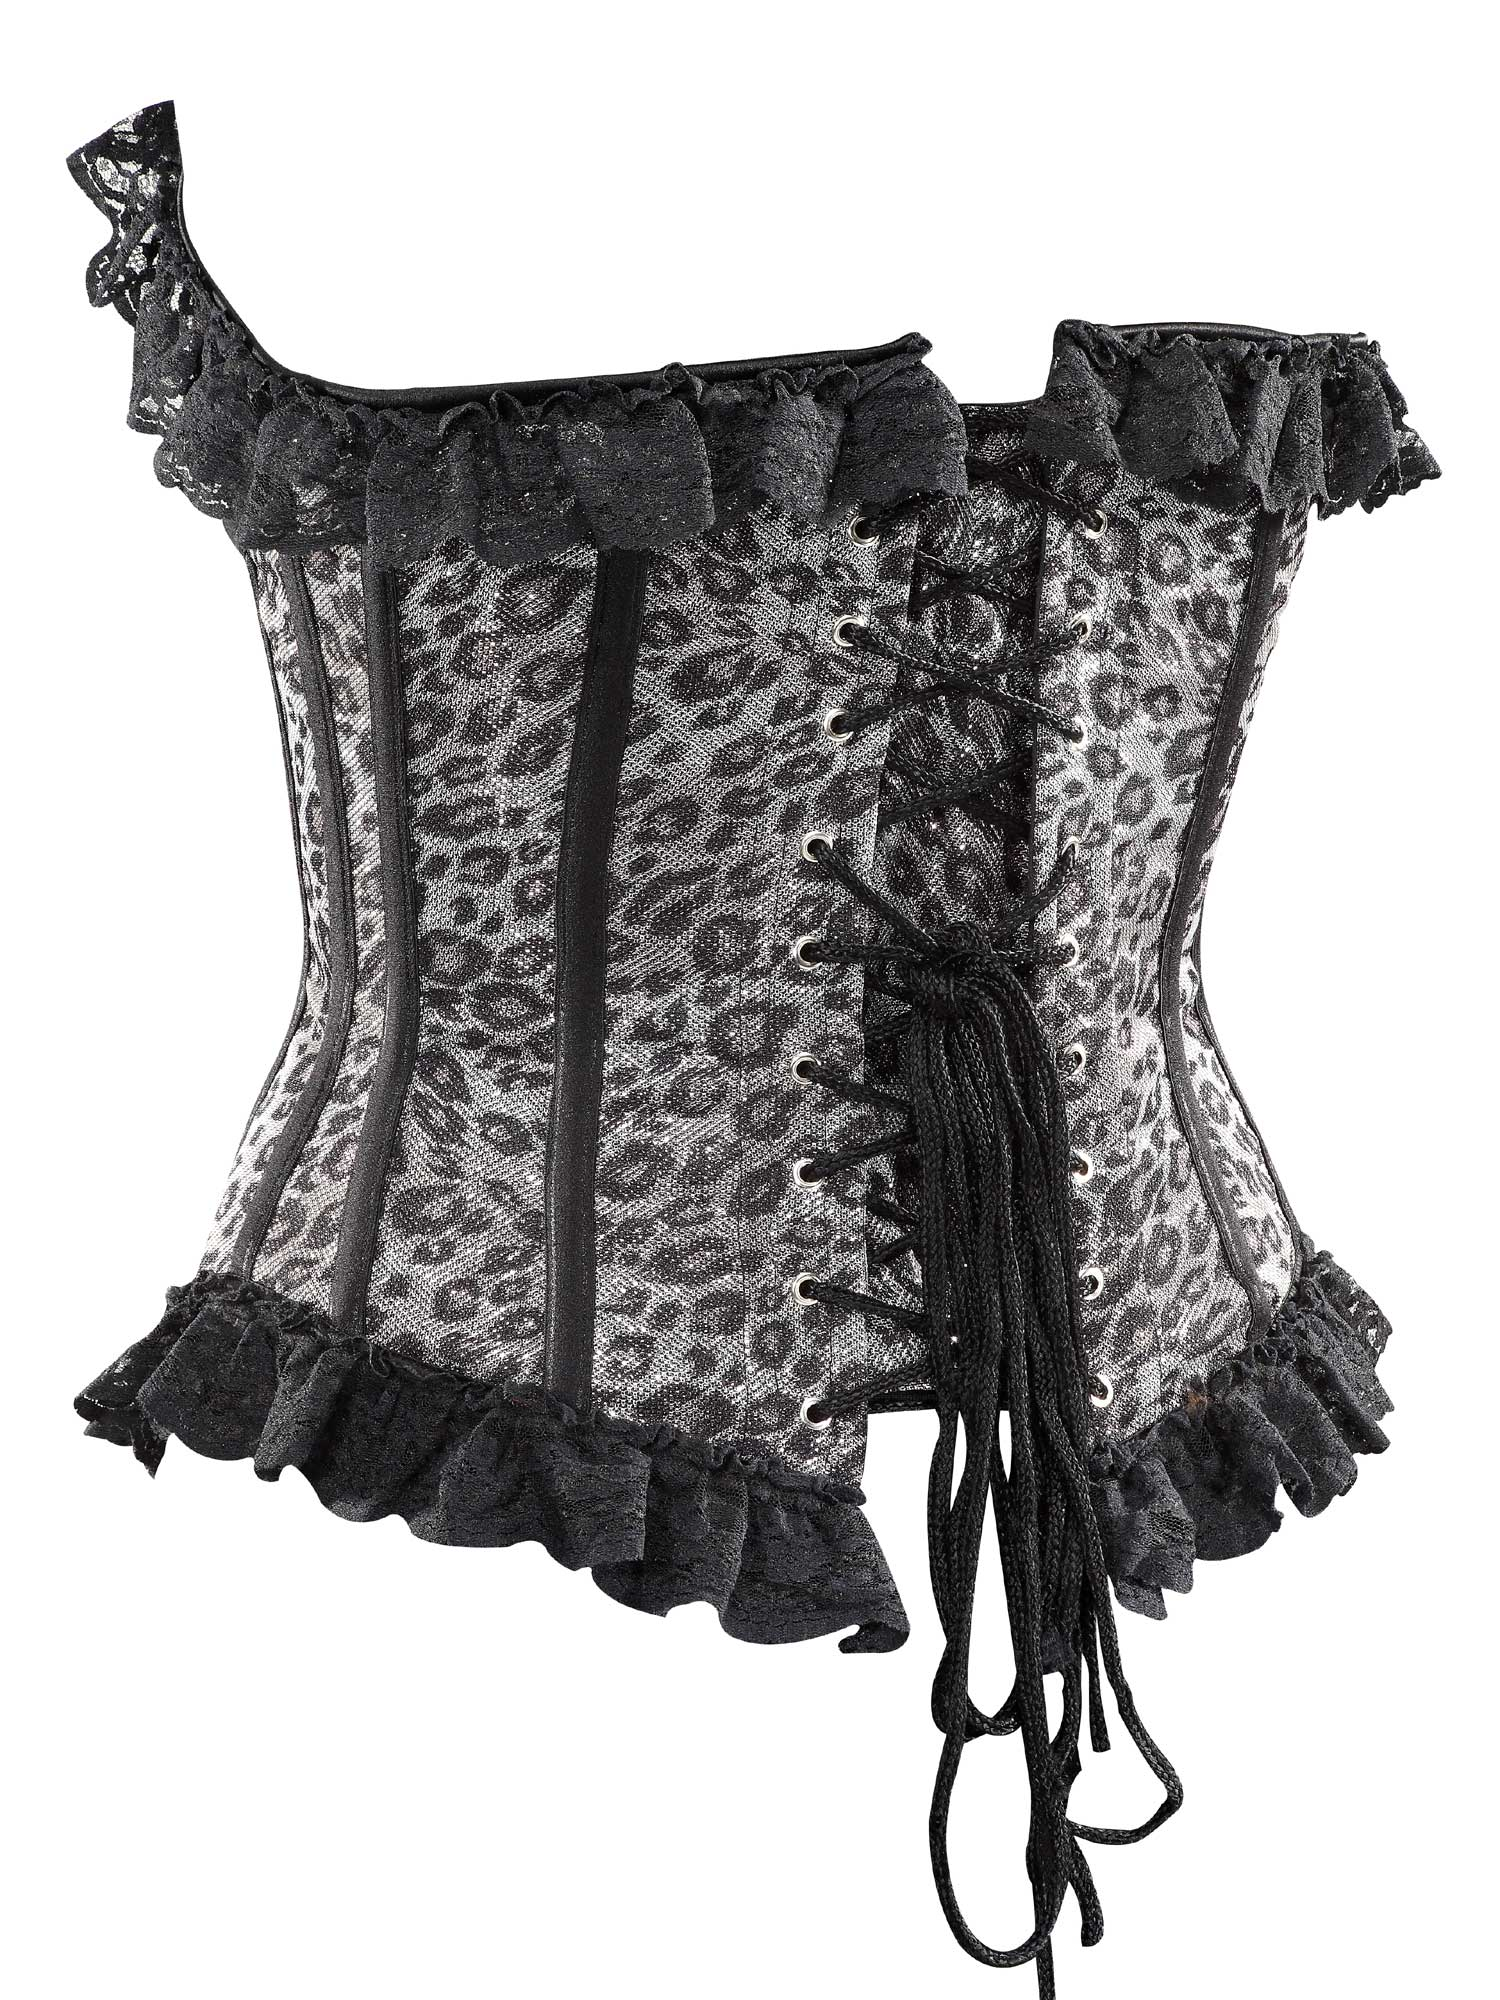 black_and_silver_leopard_fabric_steel_boning_overbust_corset_waist_cincher_bustier_bustiers_and_corsets_4.jpg